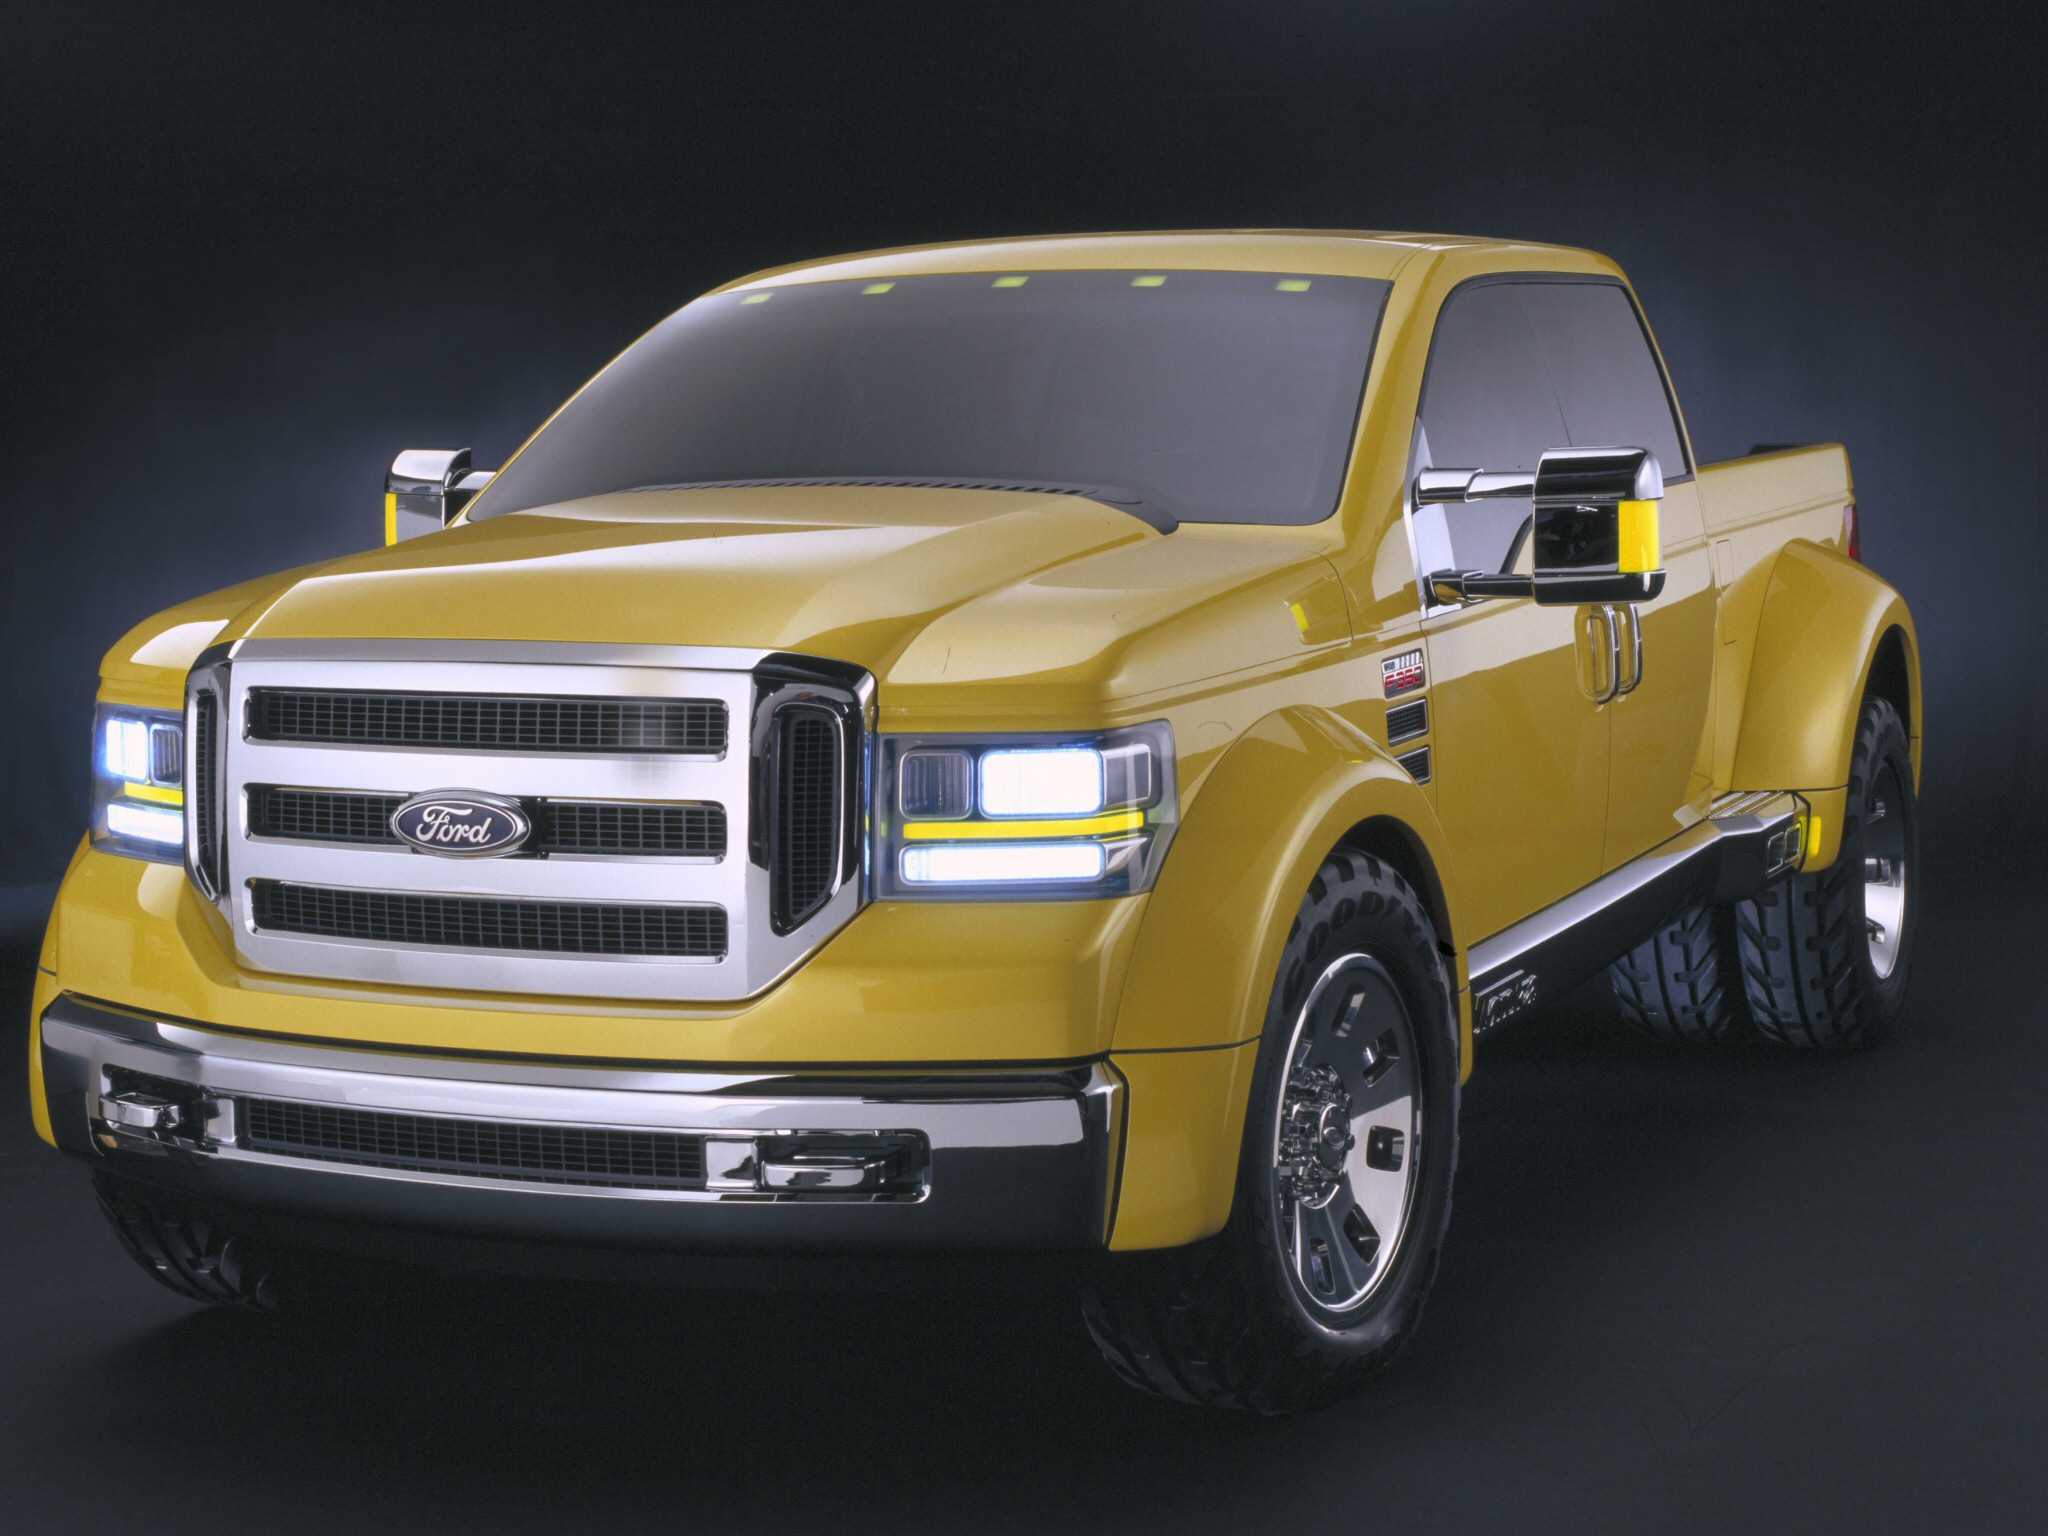 Ford 350 2002 photo - 2